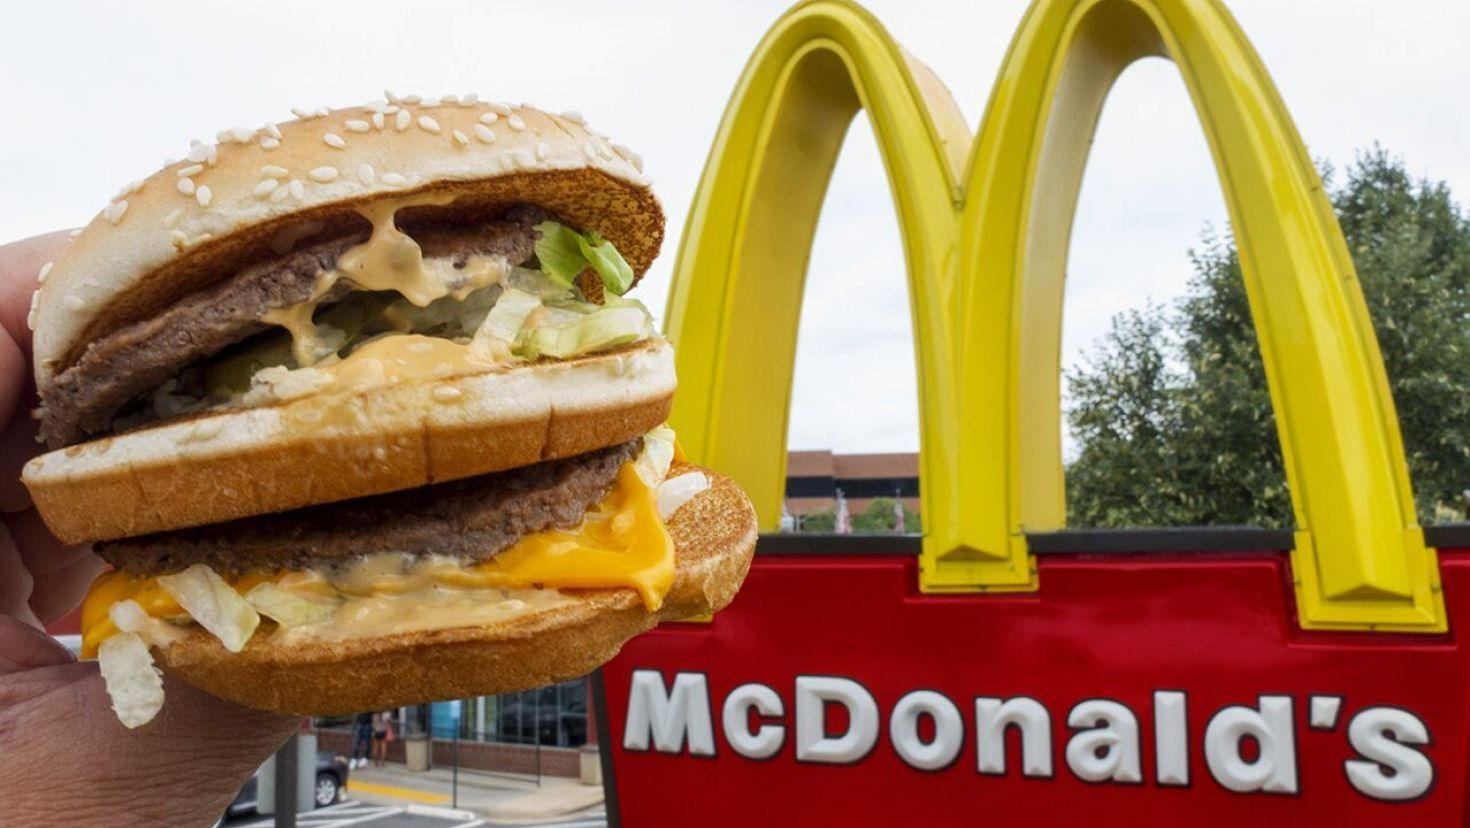 Mcdonalds almost called the big mac something else